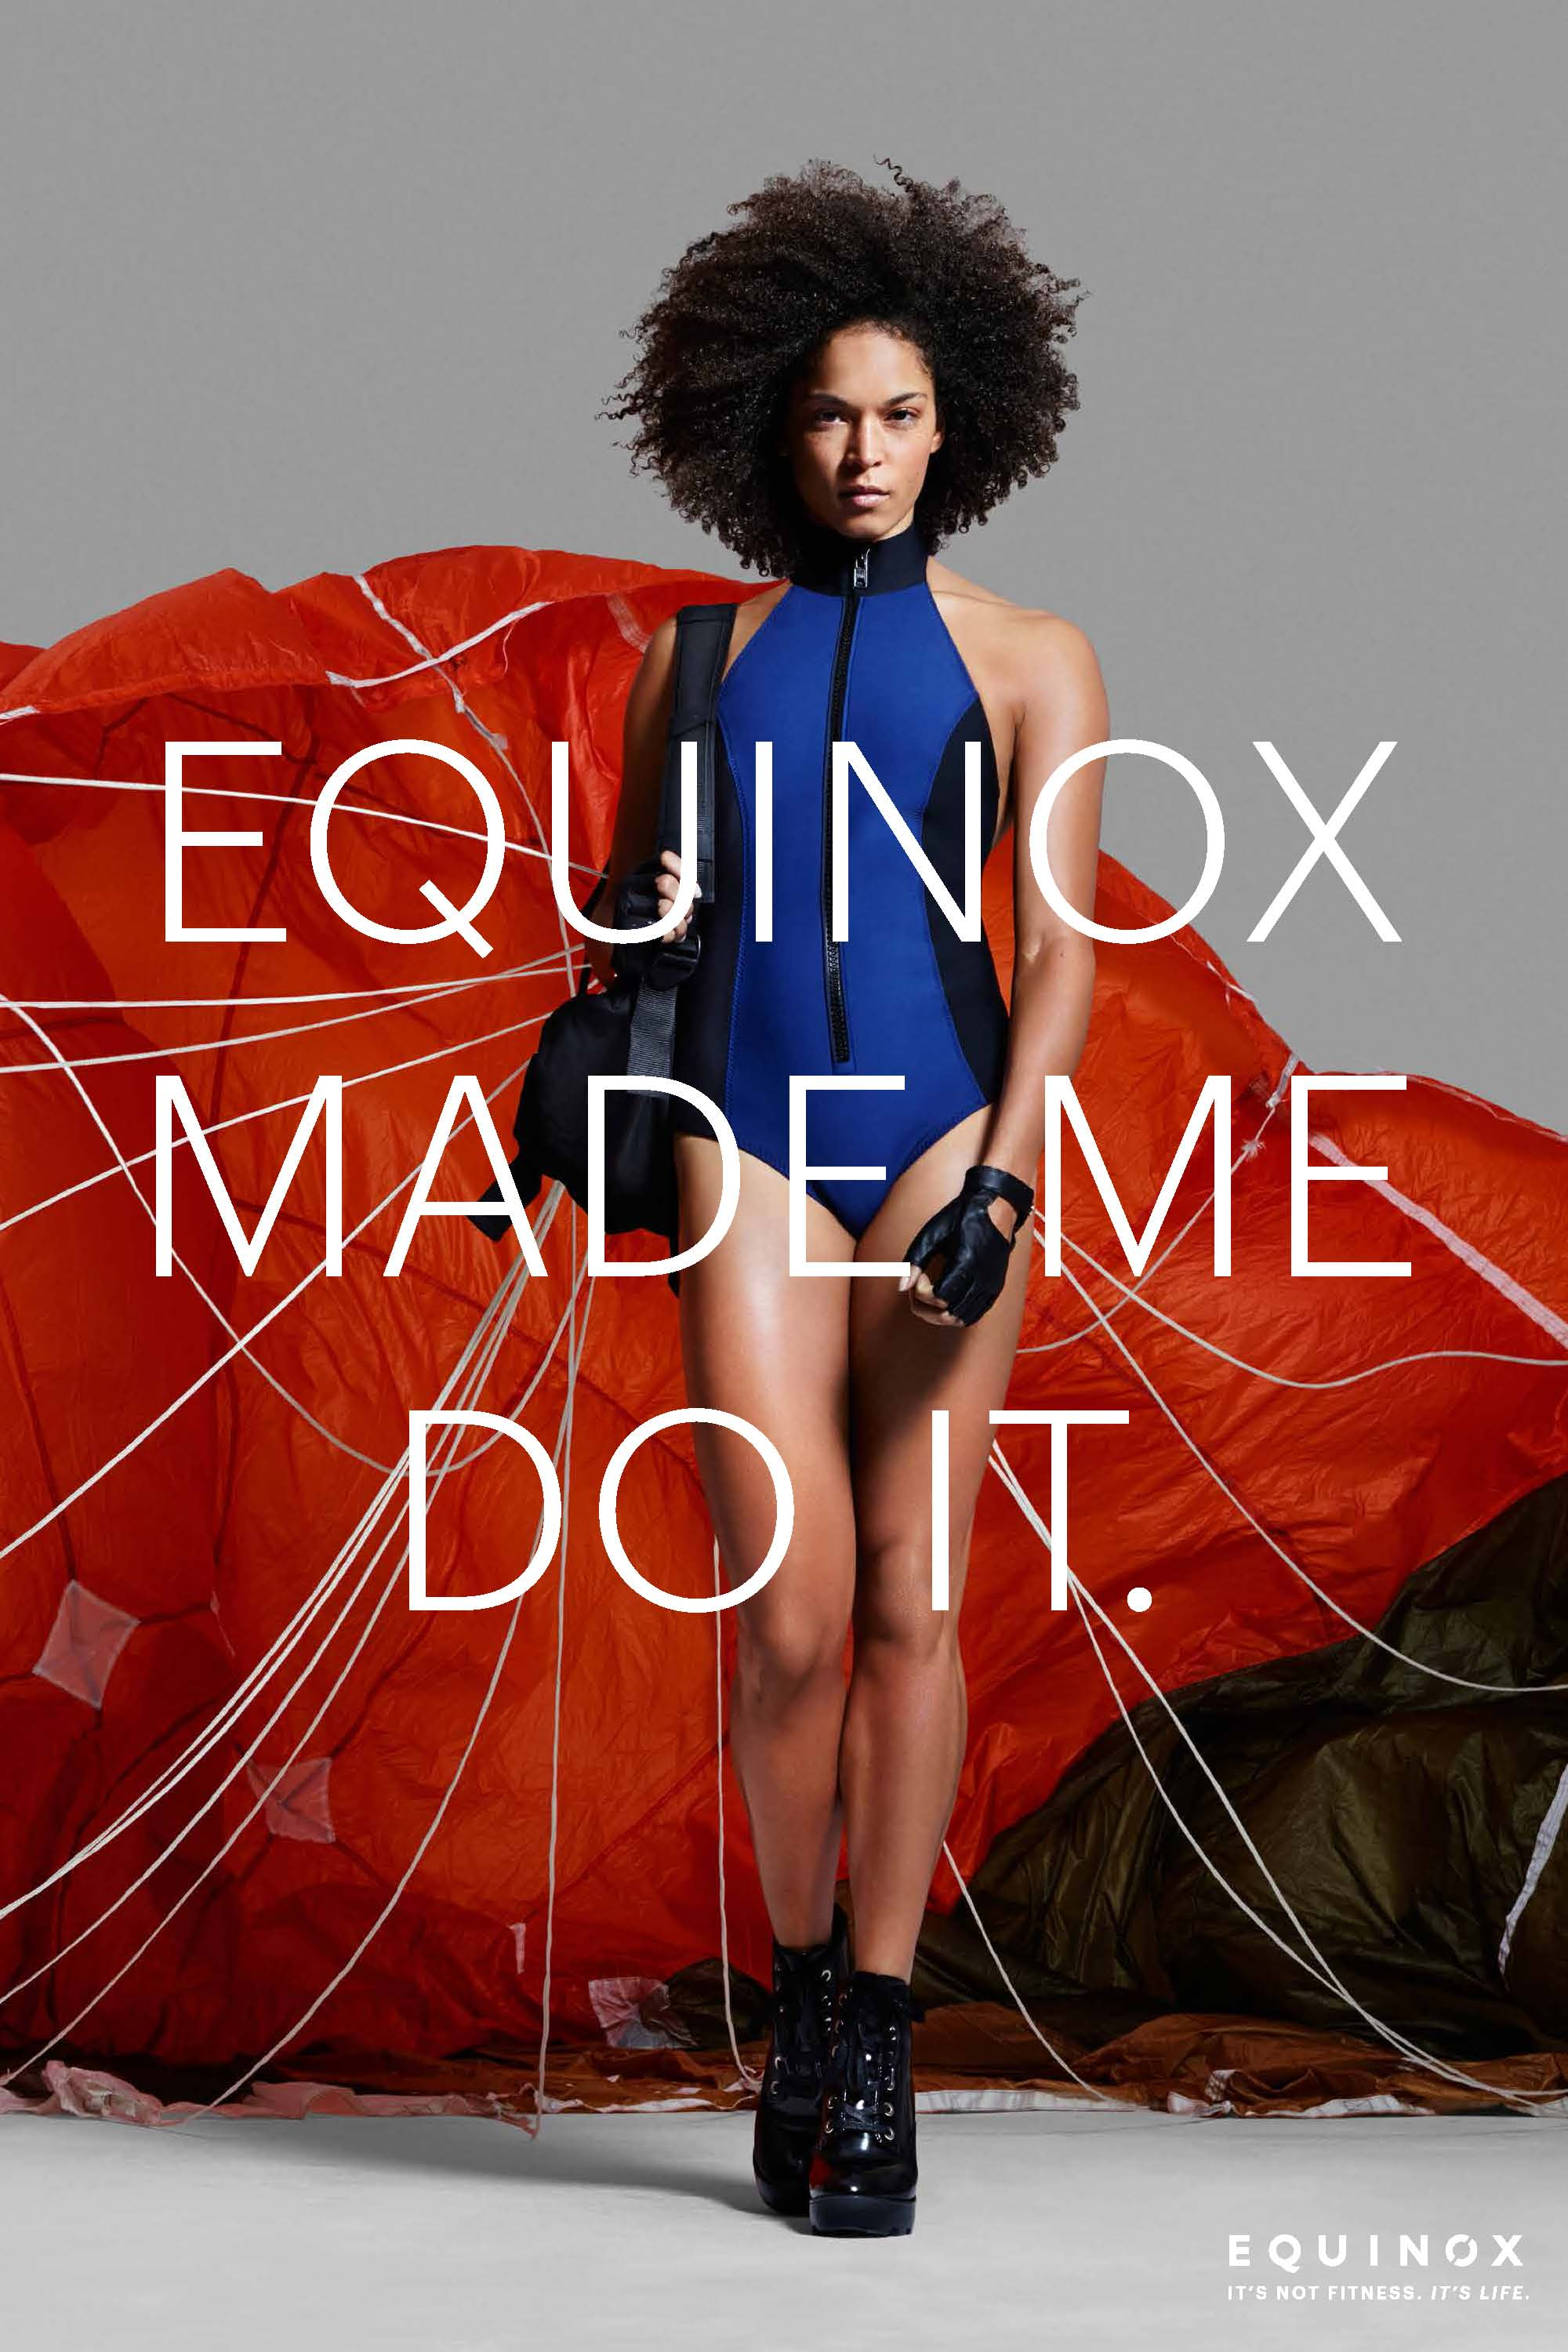 Equinox ad campaign 2015 Equinox Made Me Do It by Rankin 08